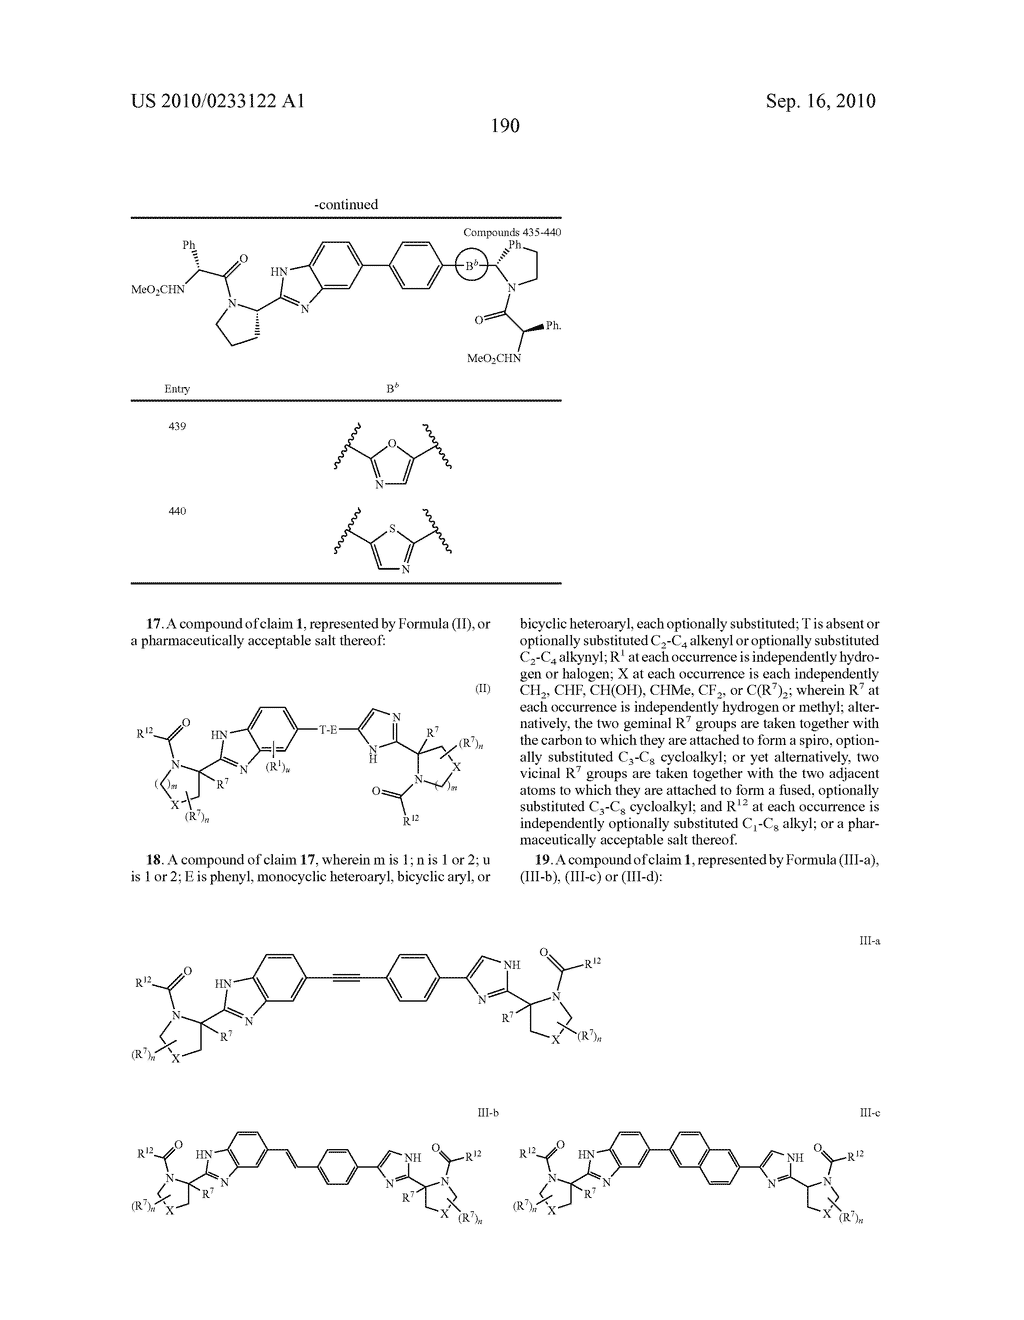 NOVEL BENZIMIDAZOLE DERIVATIVES - diagram, schematic, and image 191